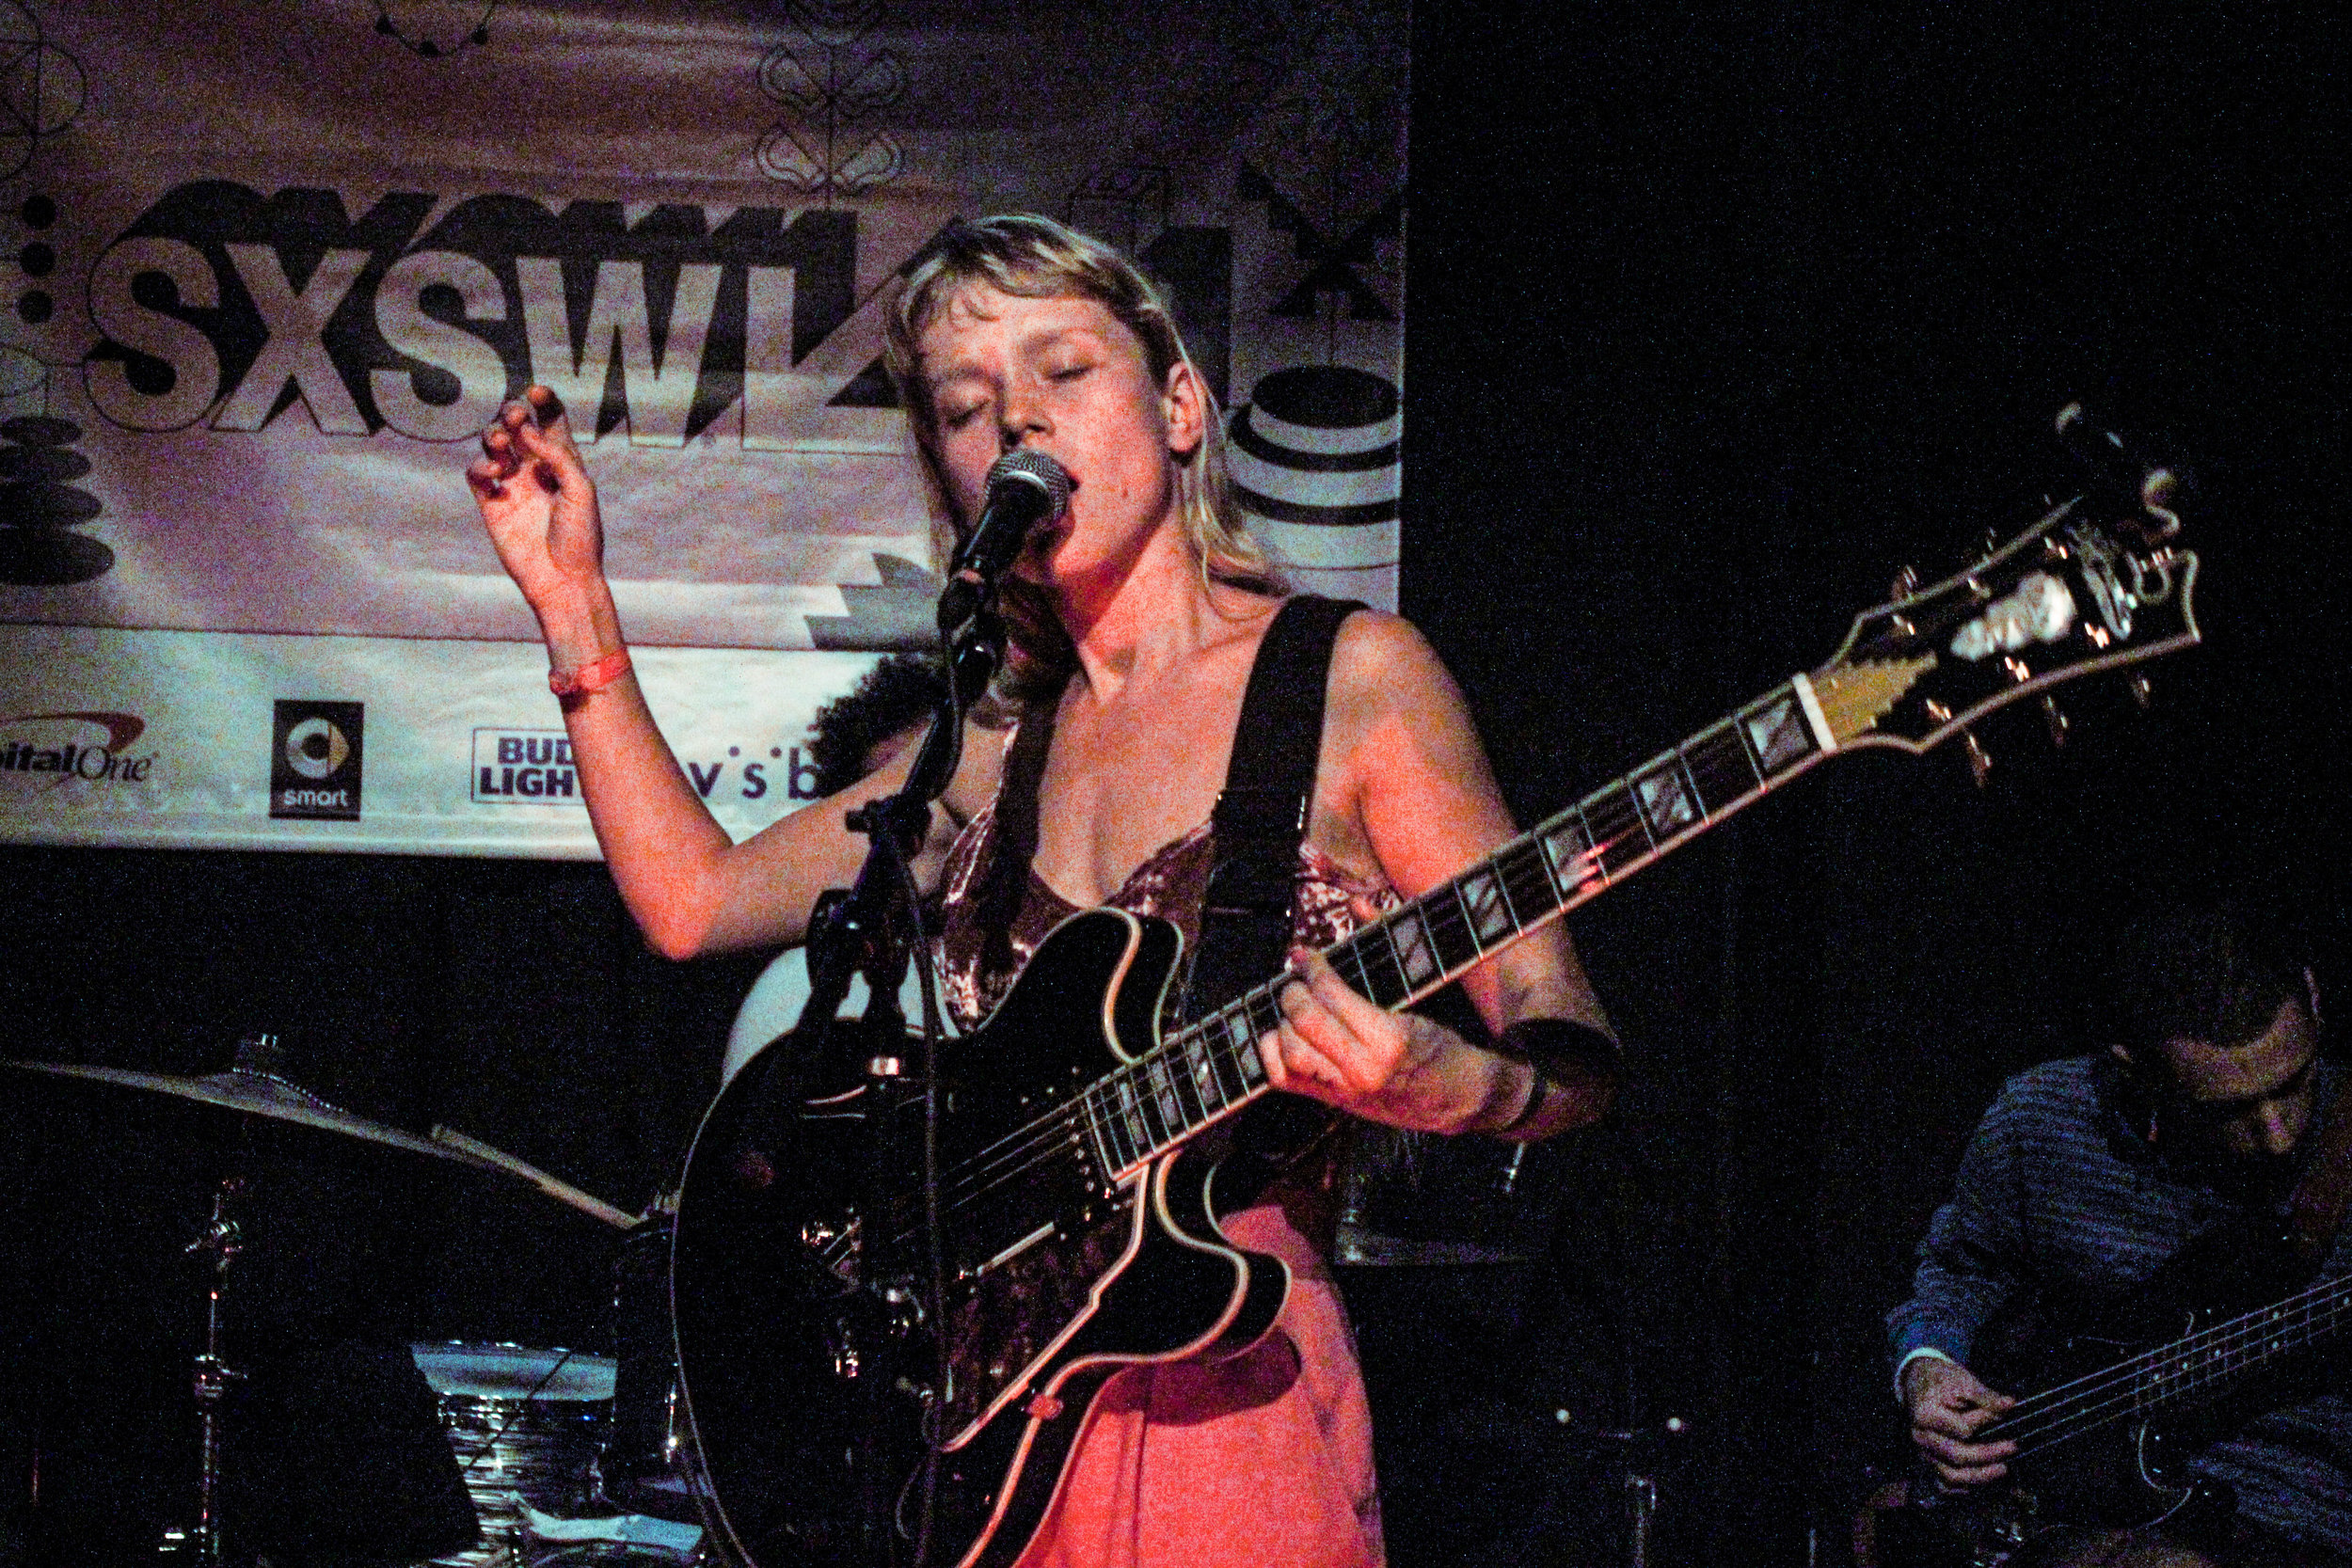 Photo © Concentus Music - Alice Phoebe Lou at SXSW